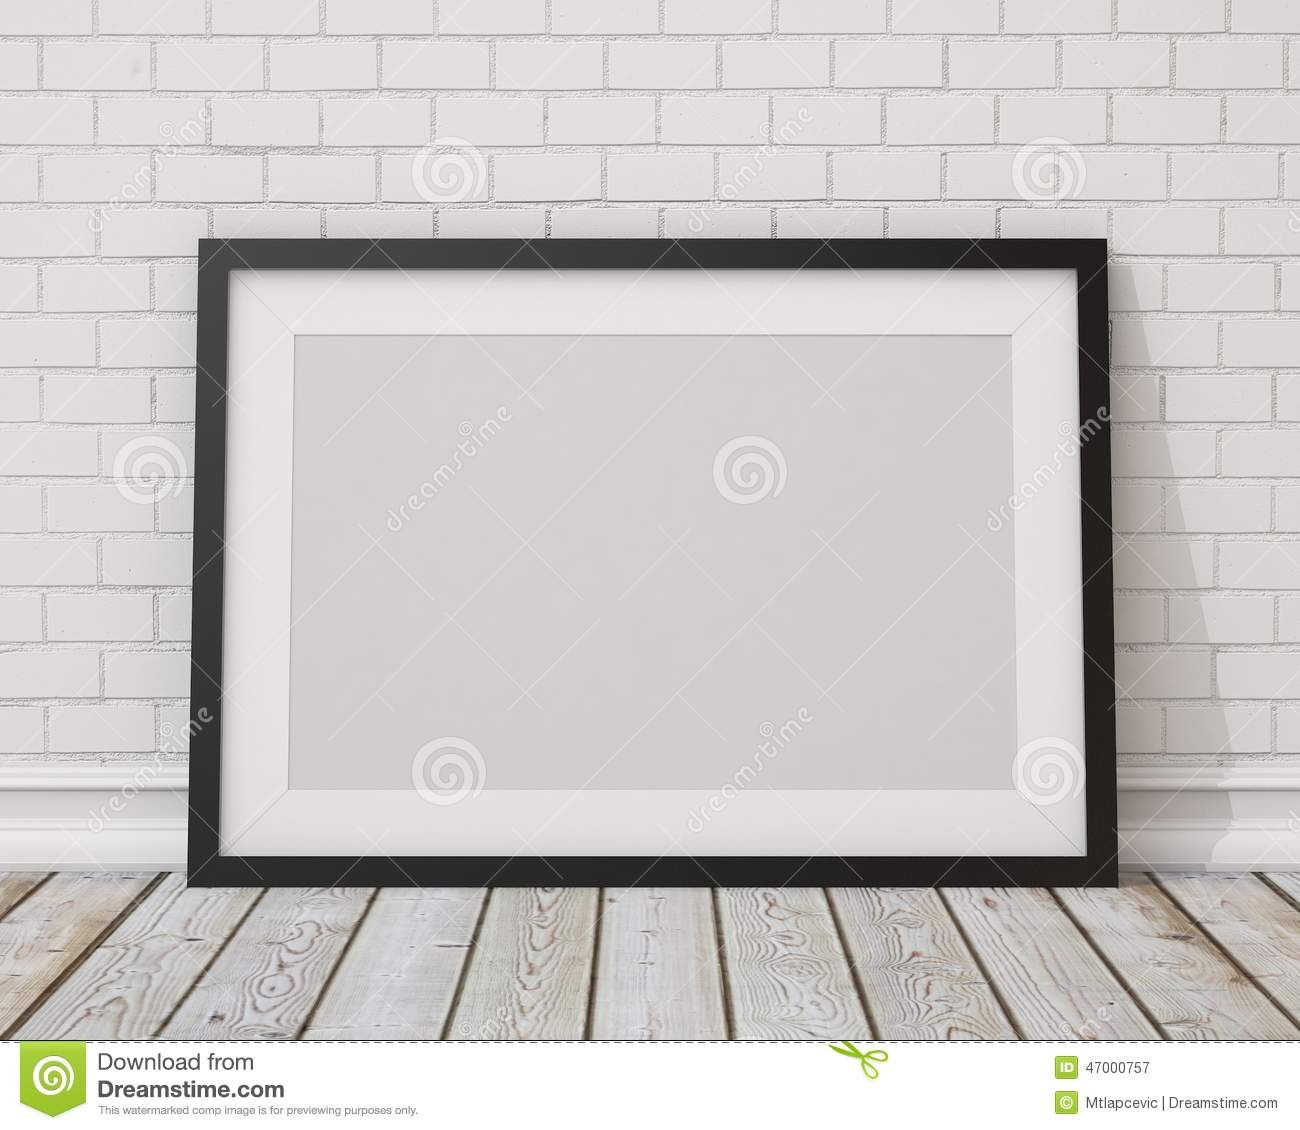 Mock up blank black horizontal picture frame on the white concrete wall and the vintage floor